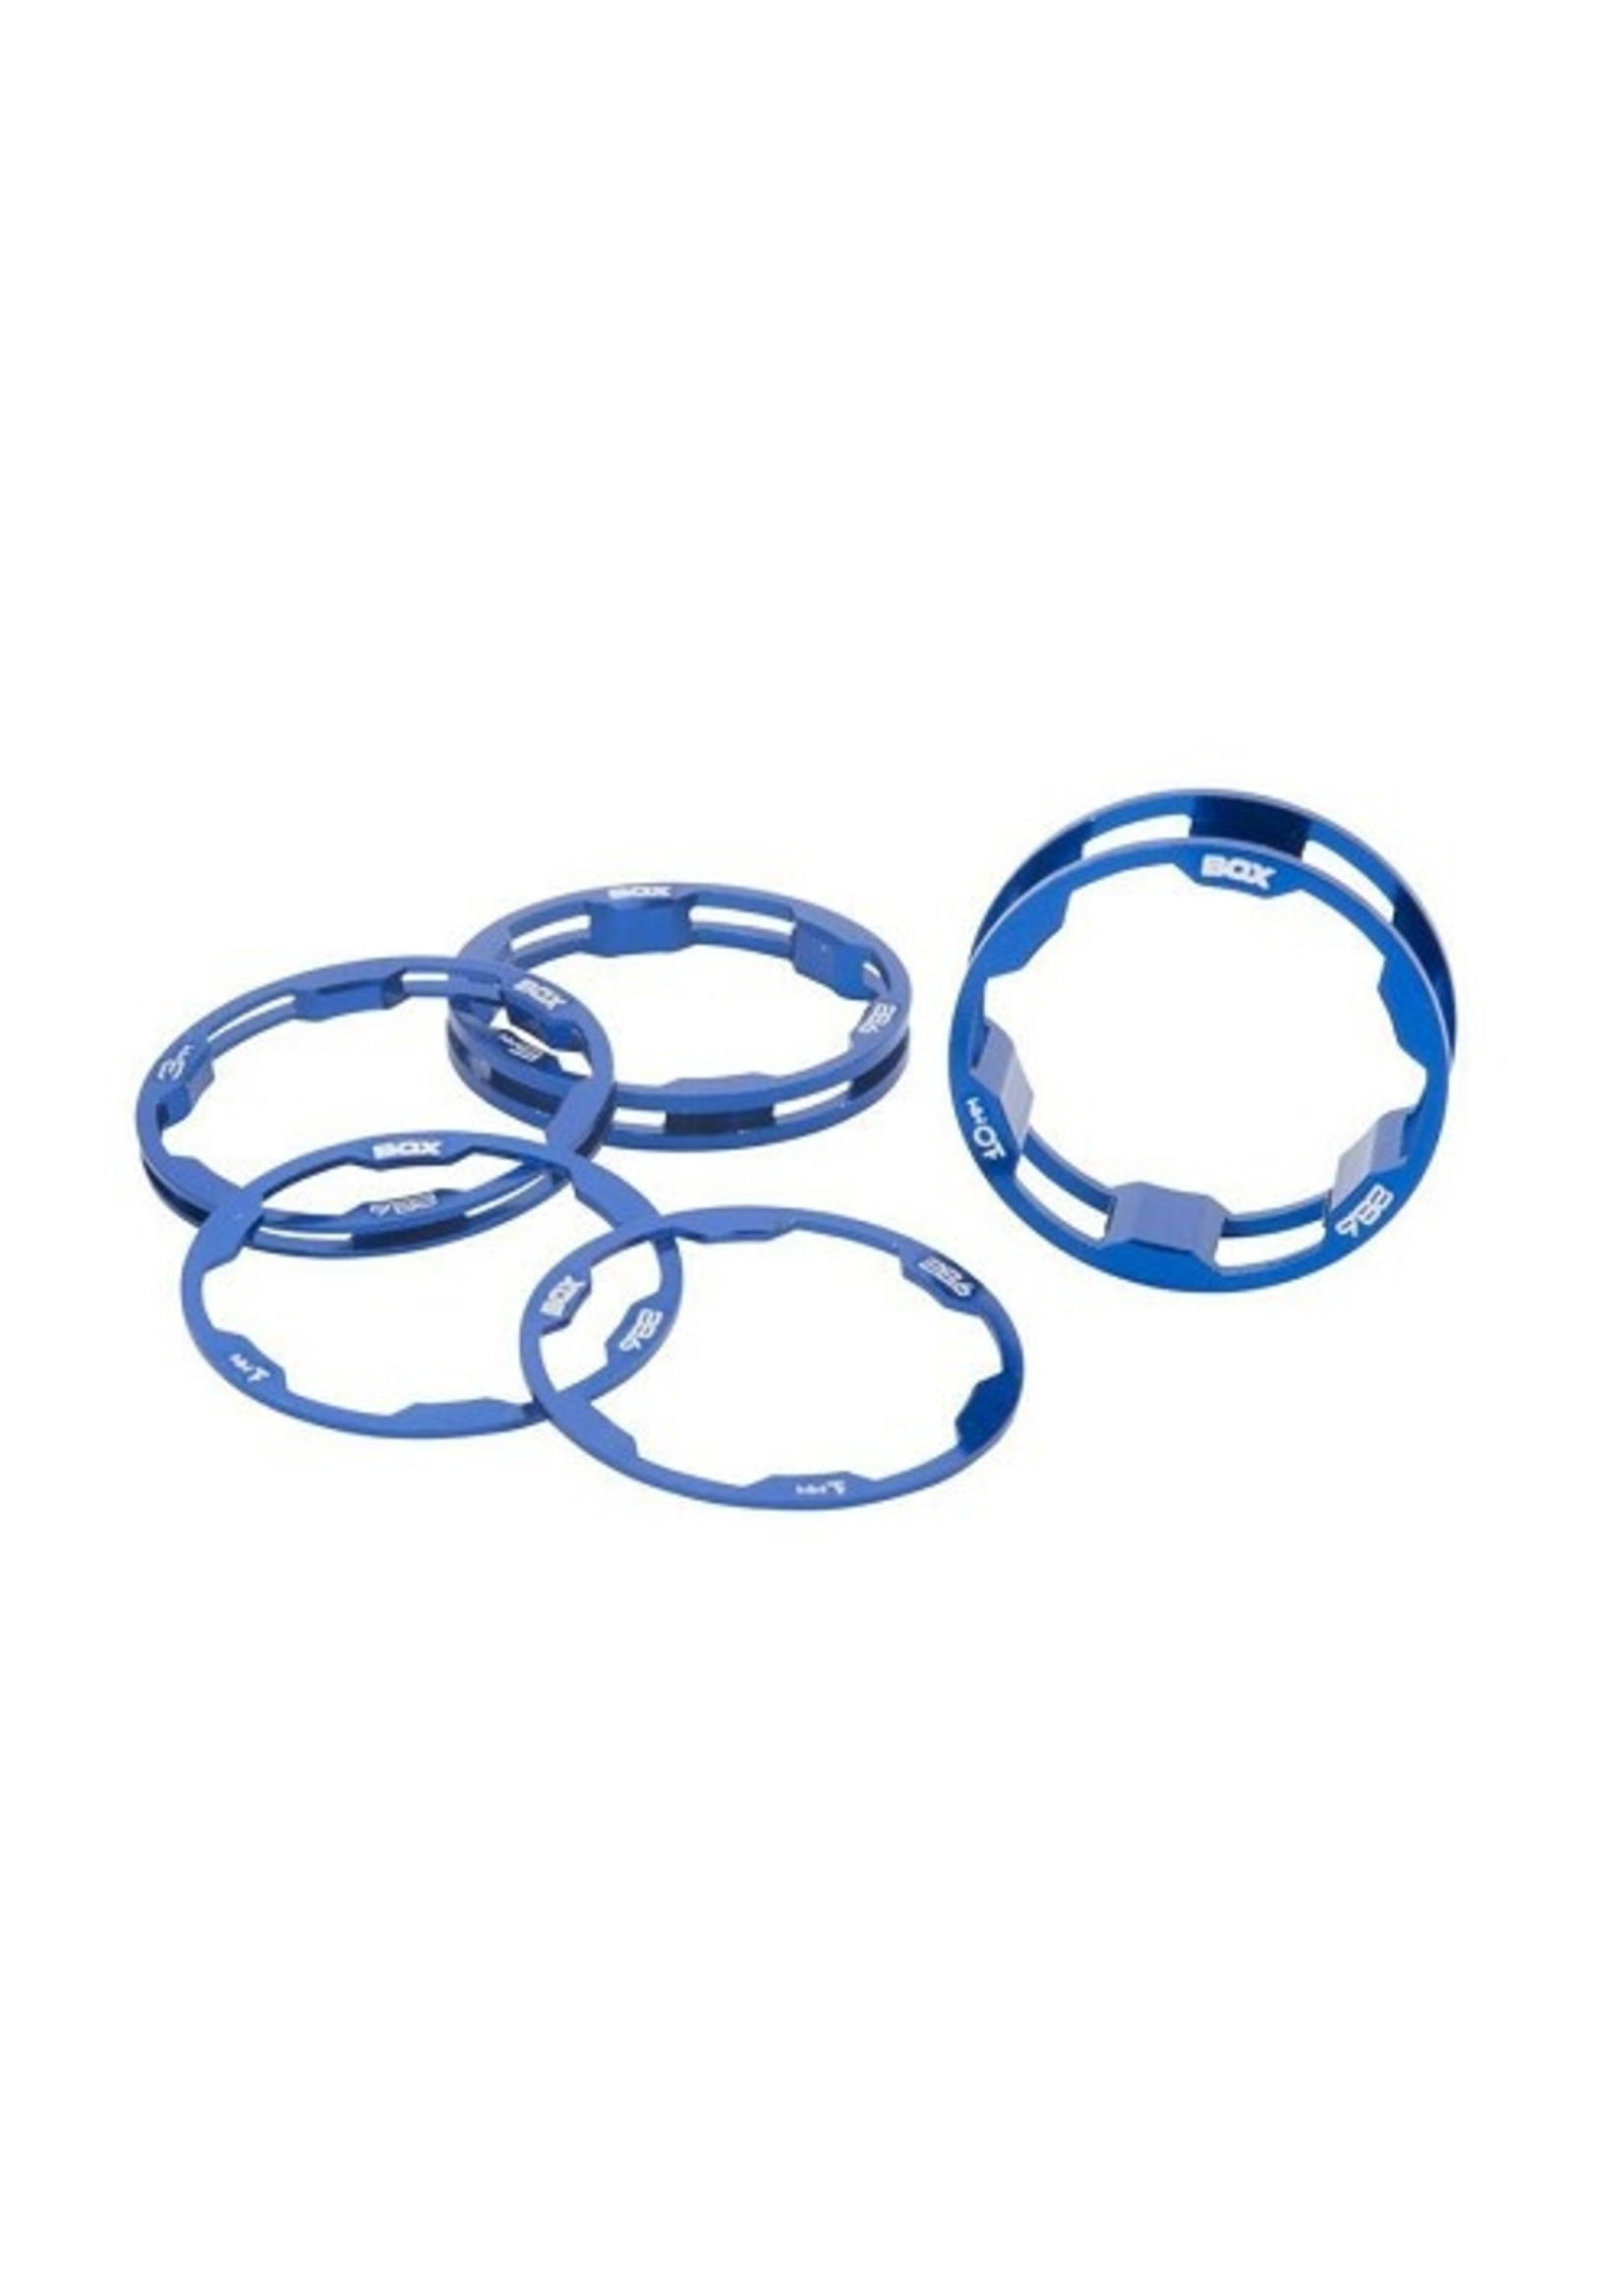 Box Components Box One Stem Spacer 1-1/8 4/Pk